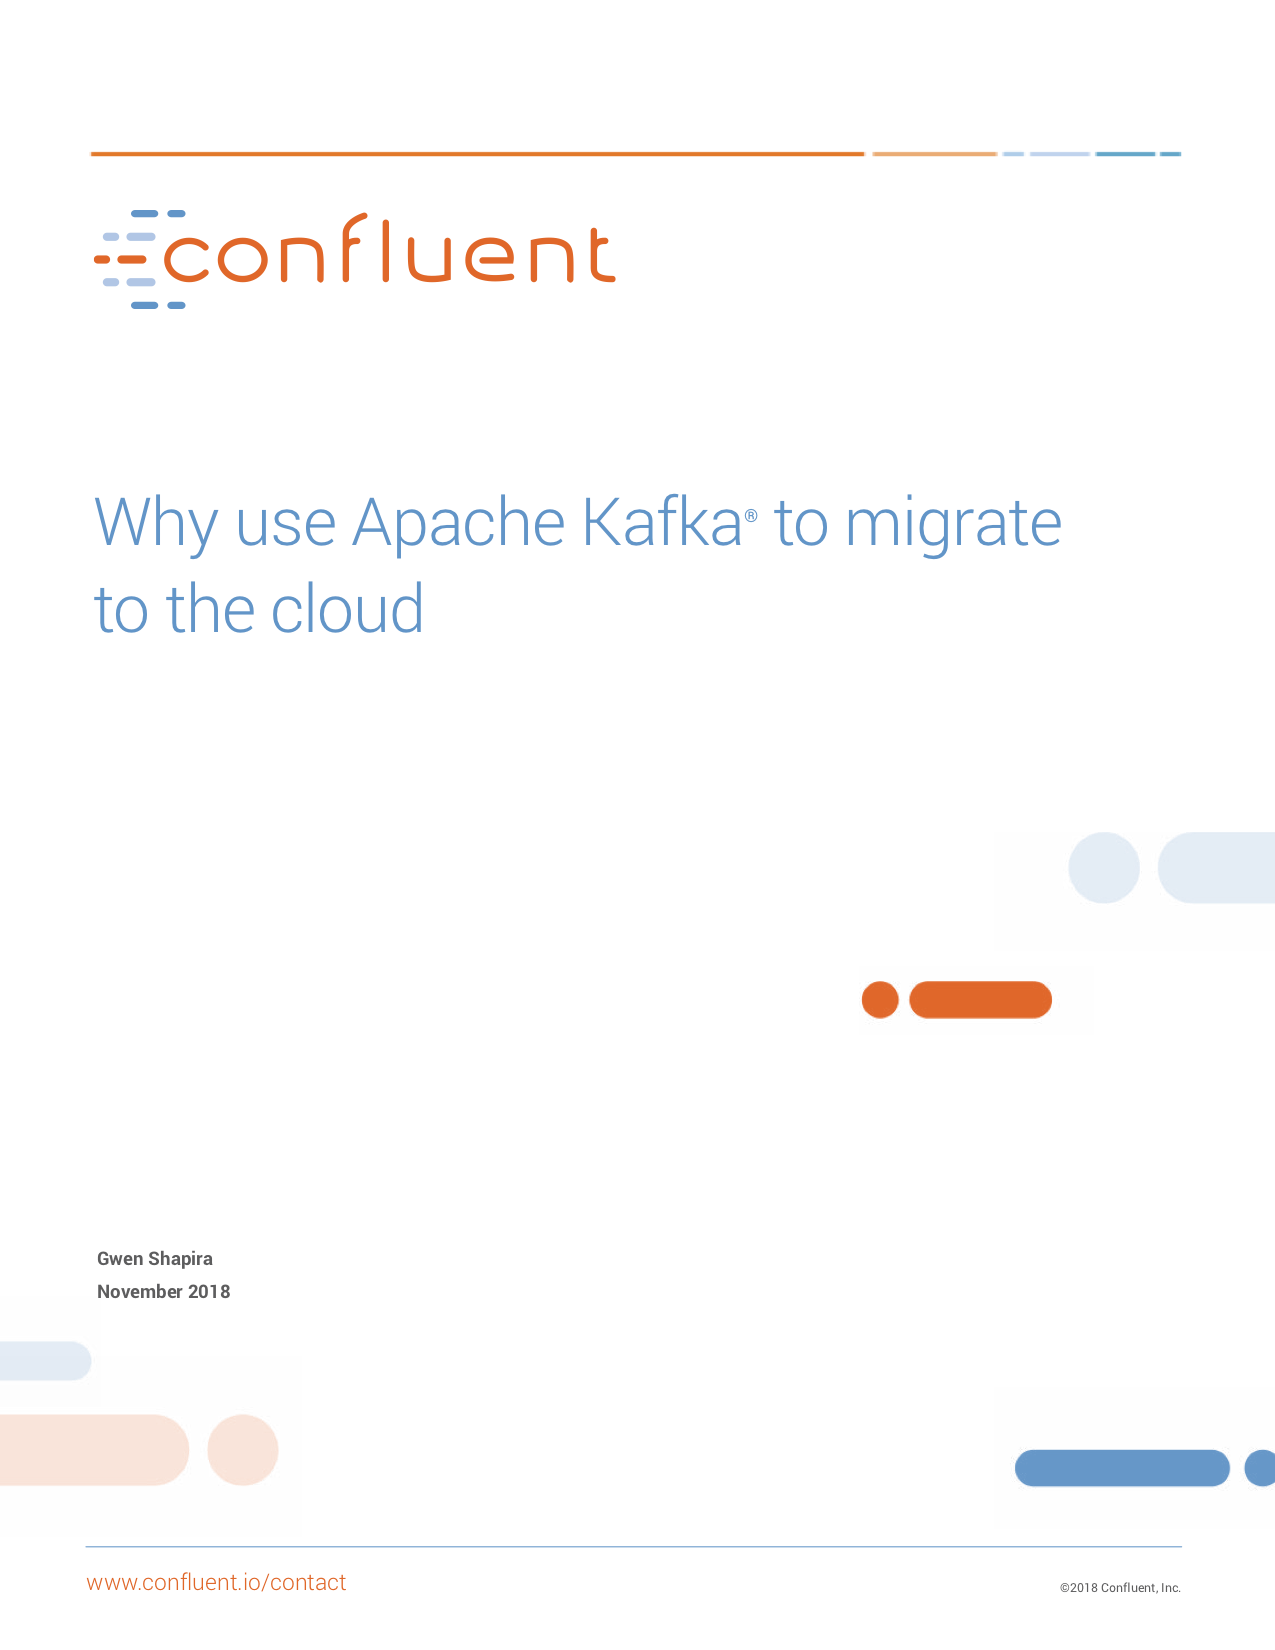 Why Use Apache Kafka to Migrate to the Cloud